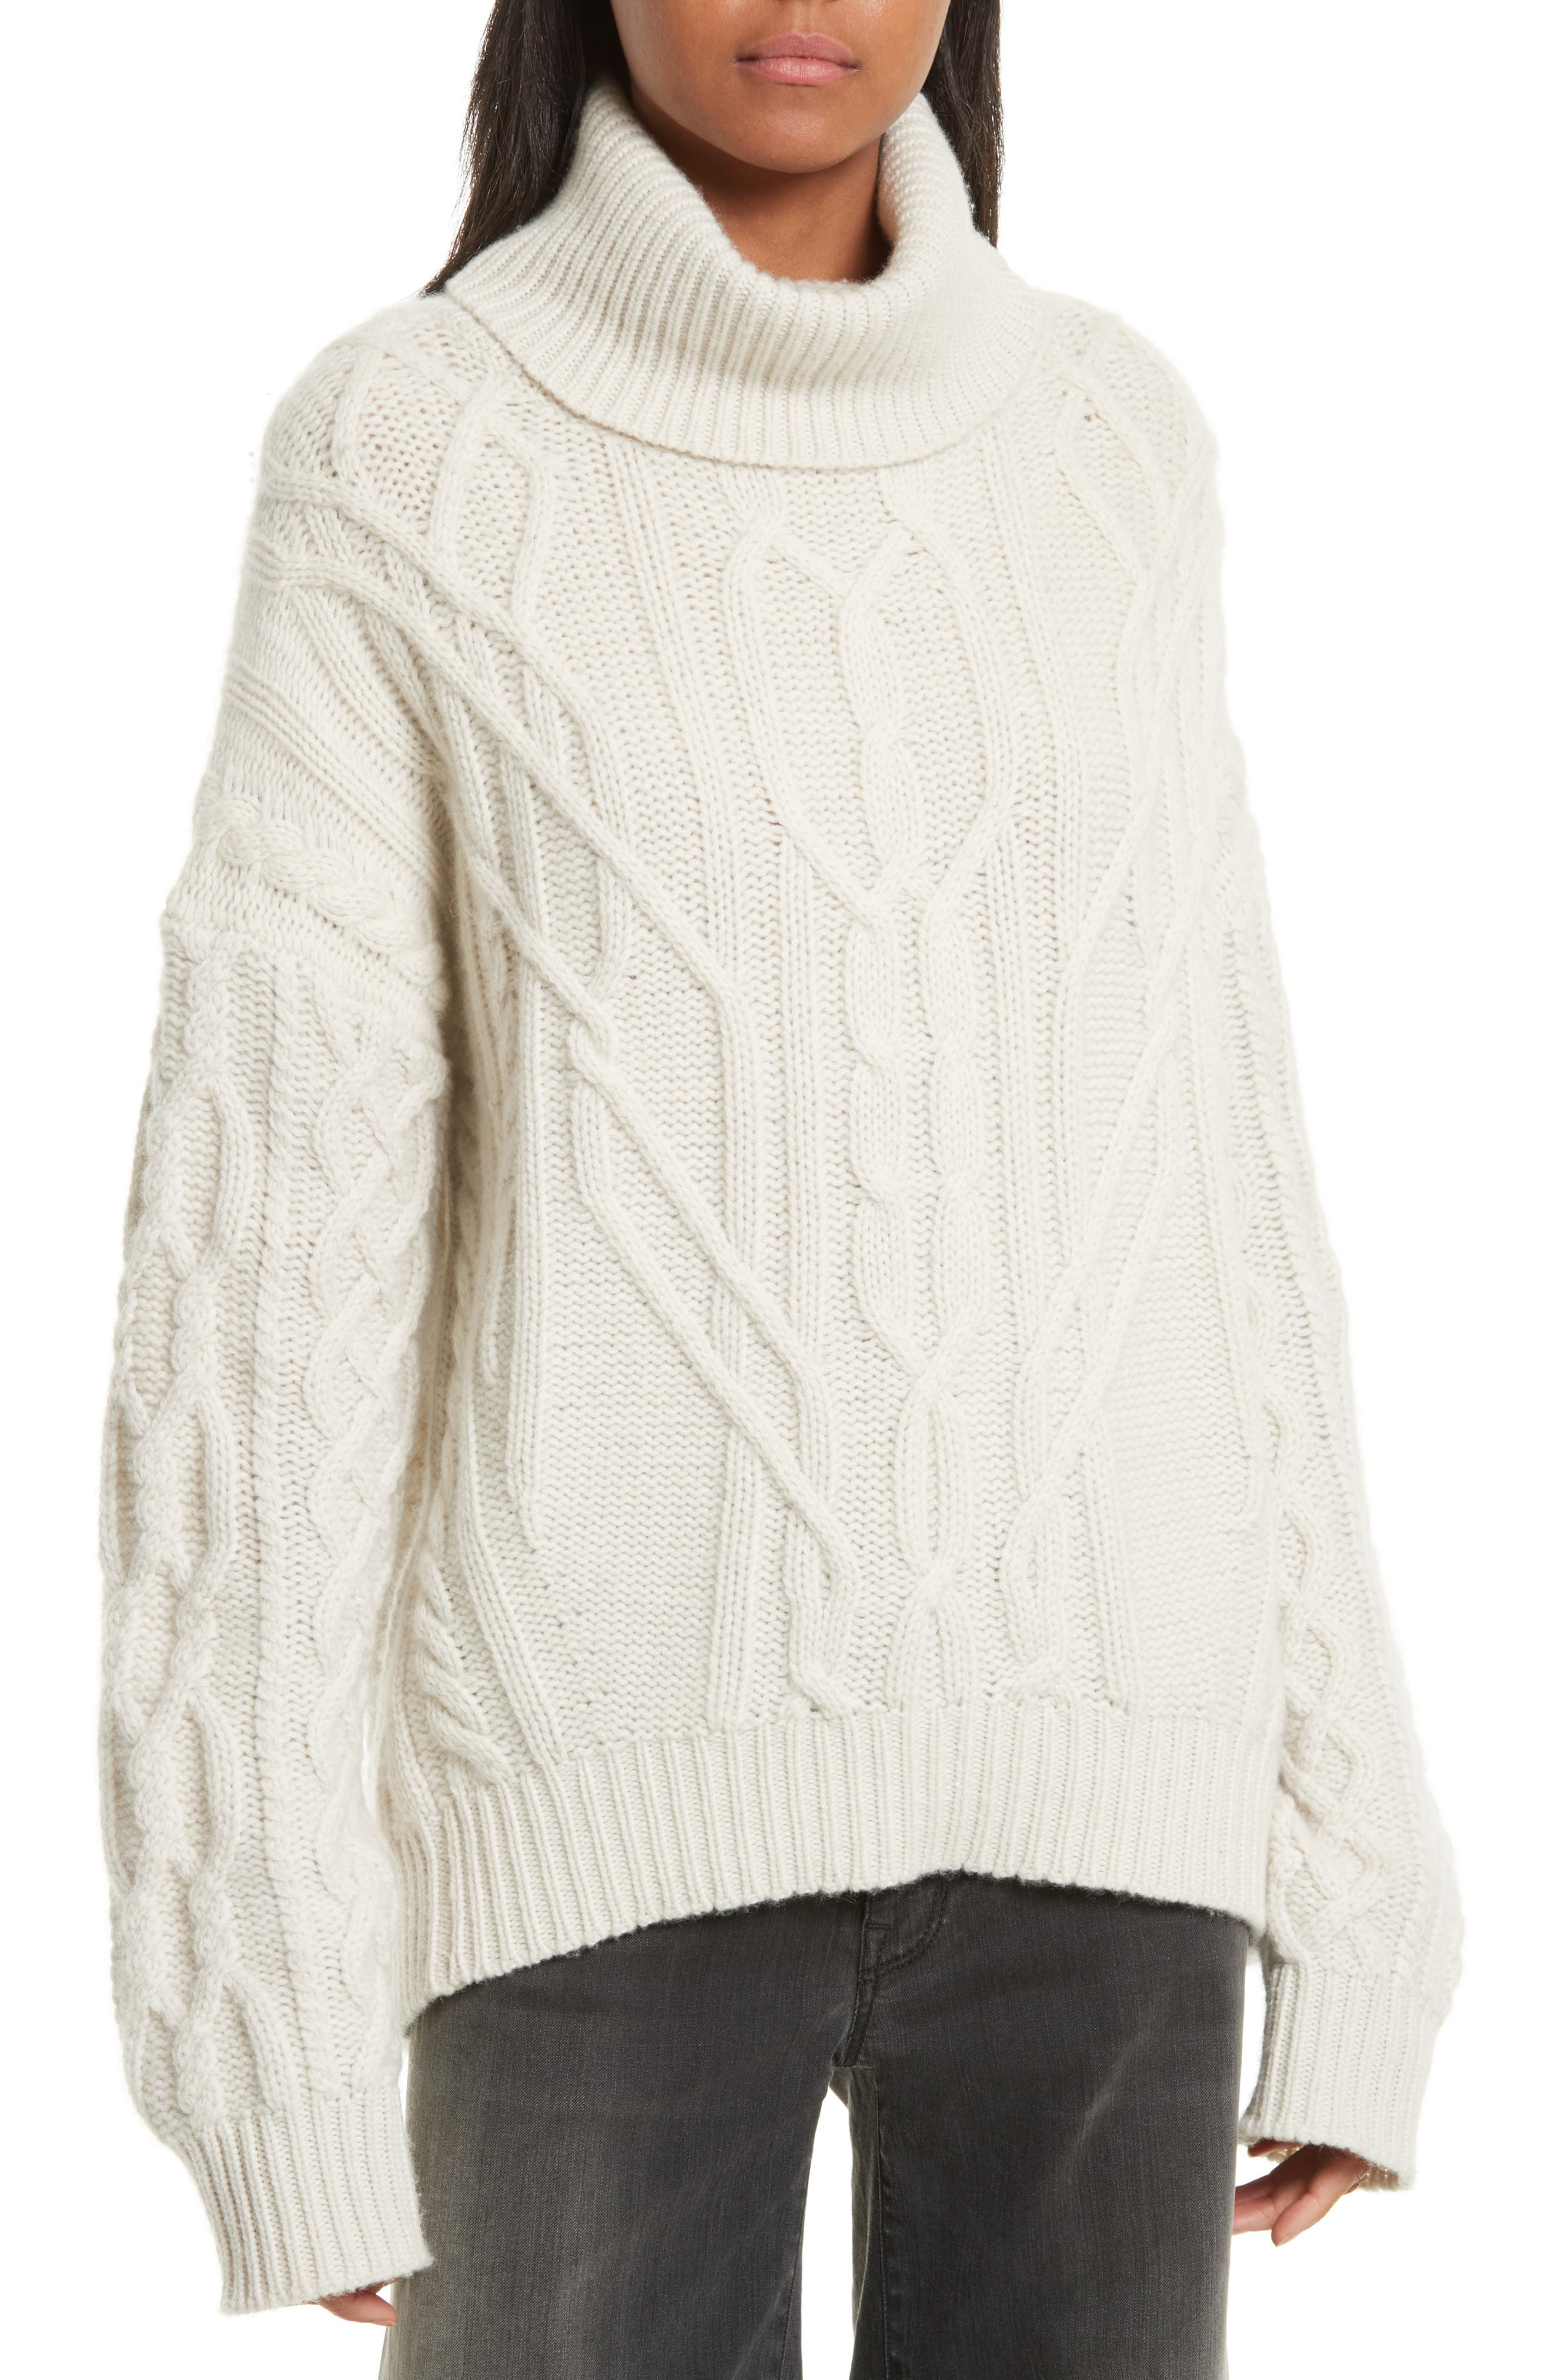 Nili Lotan Cecil Cable Knit Cashmere Turtleneck Sweater